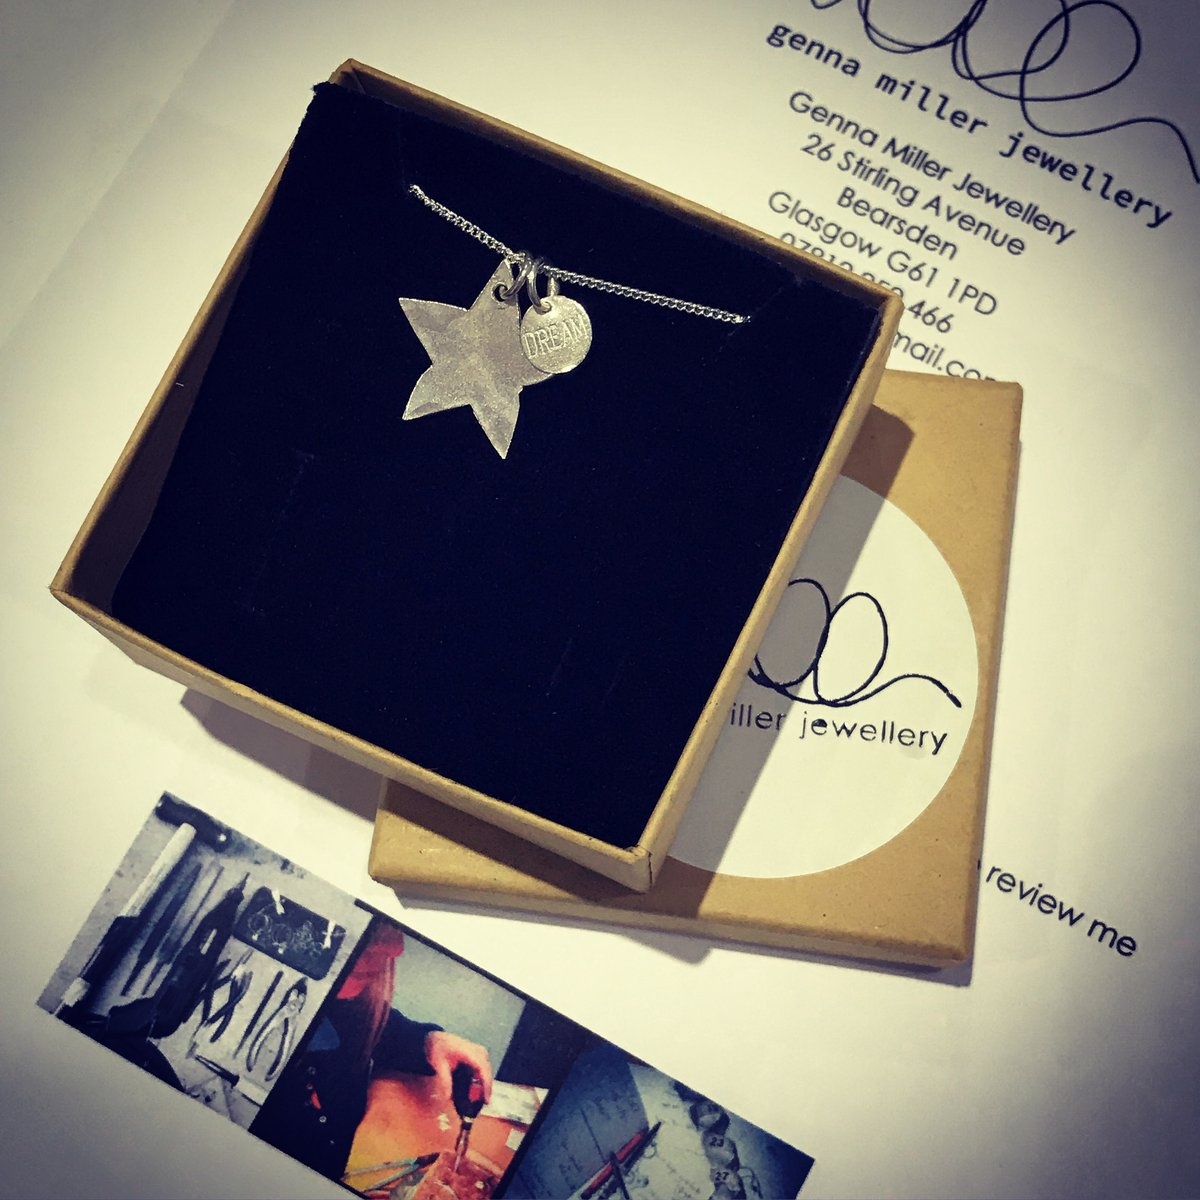 Lovely little piece headed out to make someone smile. ☺️⭐💭 #makeandcreate #shoplocal #smallbusiness #jeweller #scottishjeweller #makingjewellery #handmade #jewellerymaking #designermaker #dowhatyoulove #jewellerydesigner